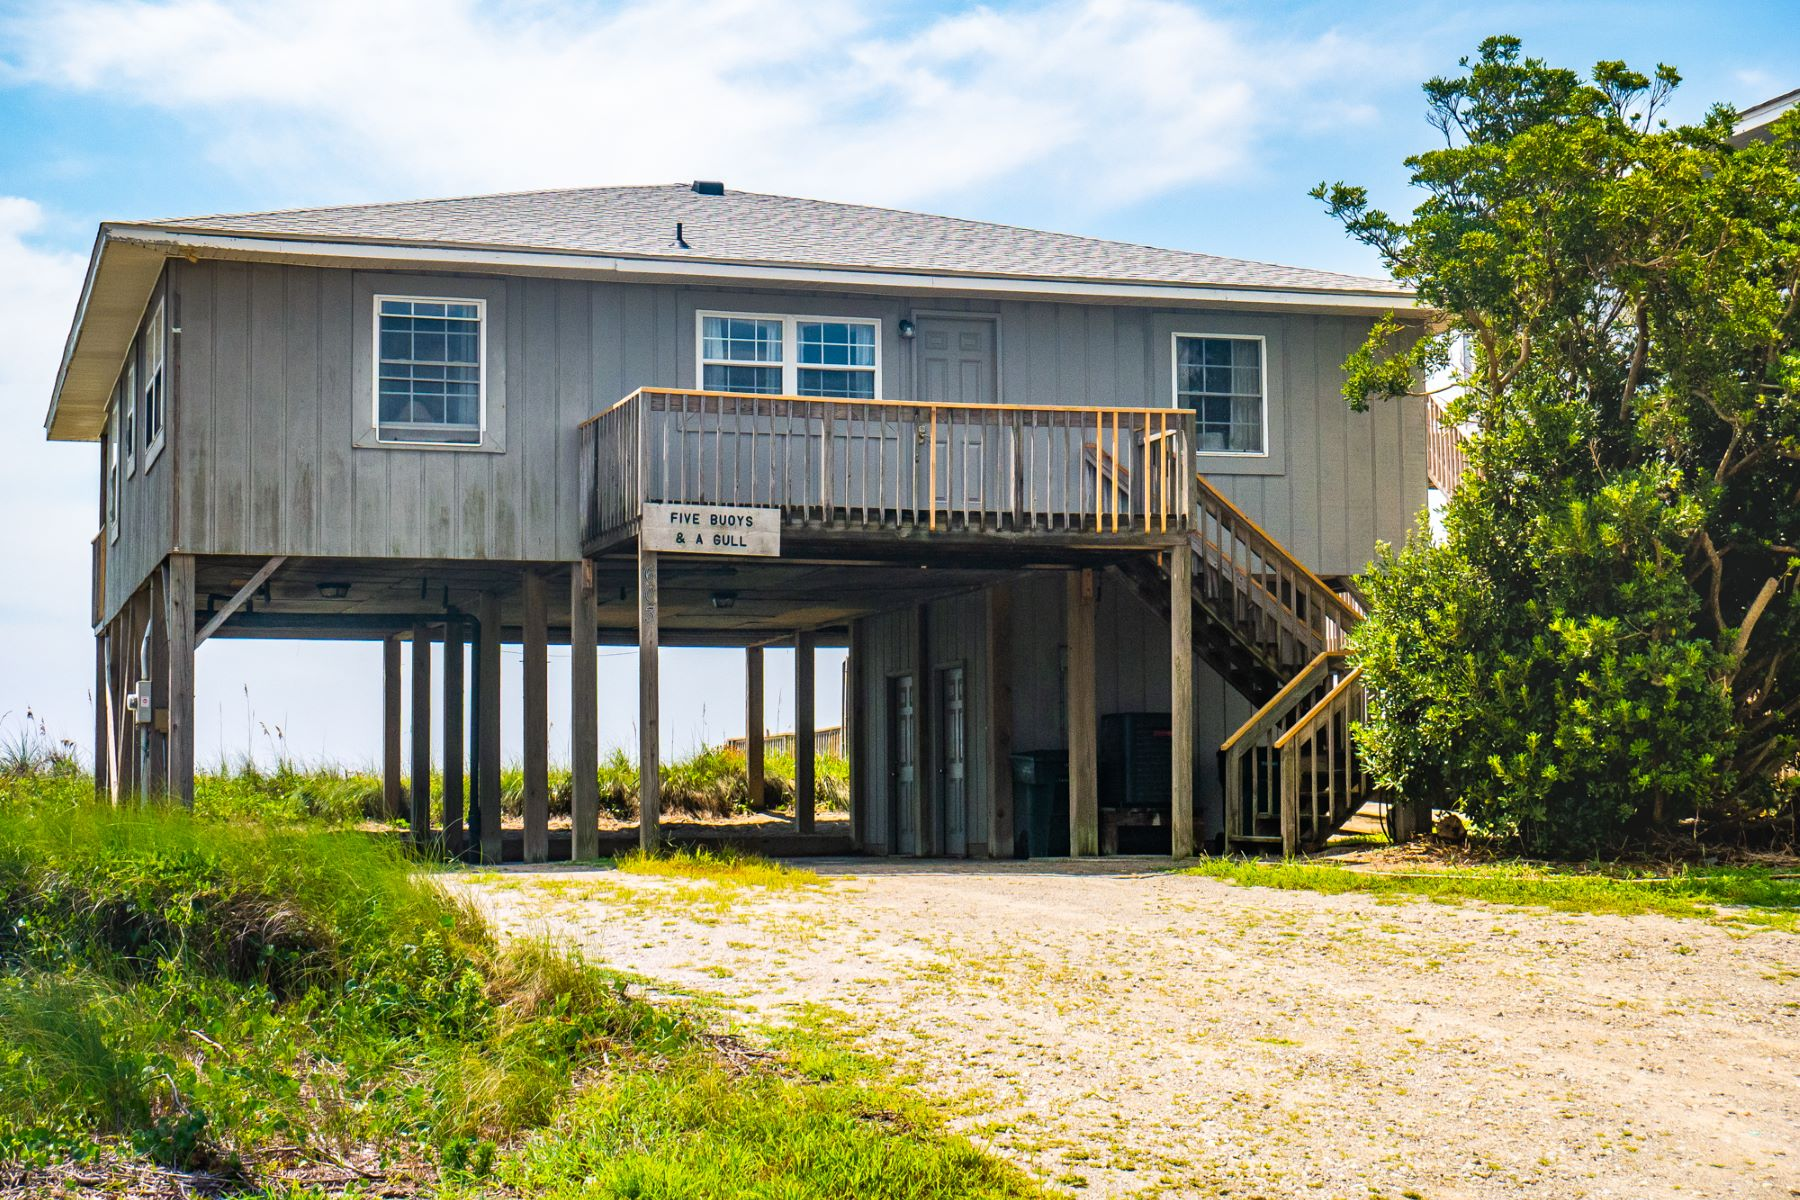 Single Family Homes for Sale at Vintage Oceanfront Cottage 603 N. Anderson Blvd Topsail Beach, North Carolina 28445 United States